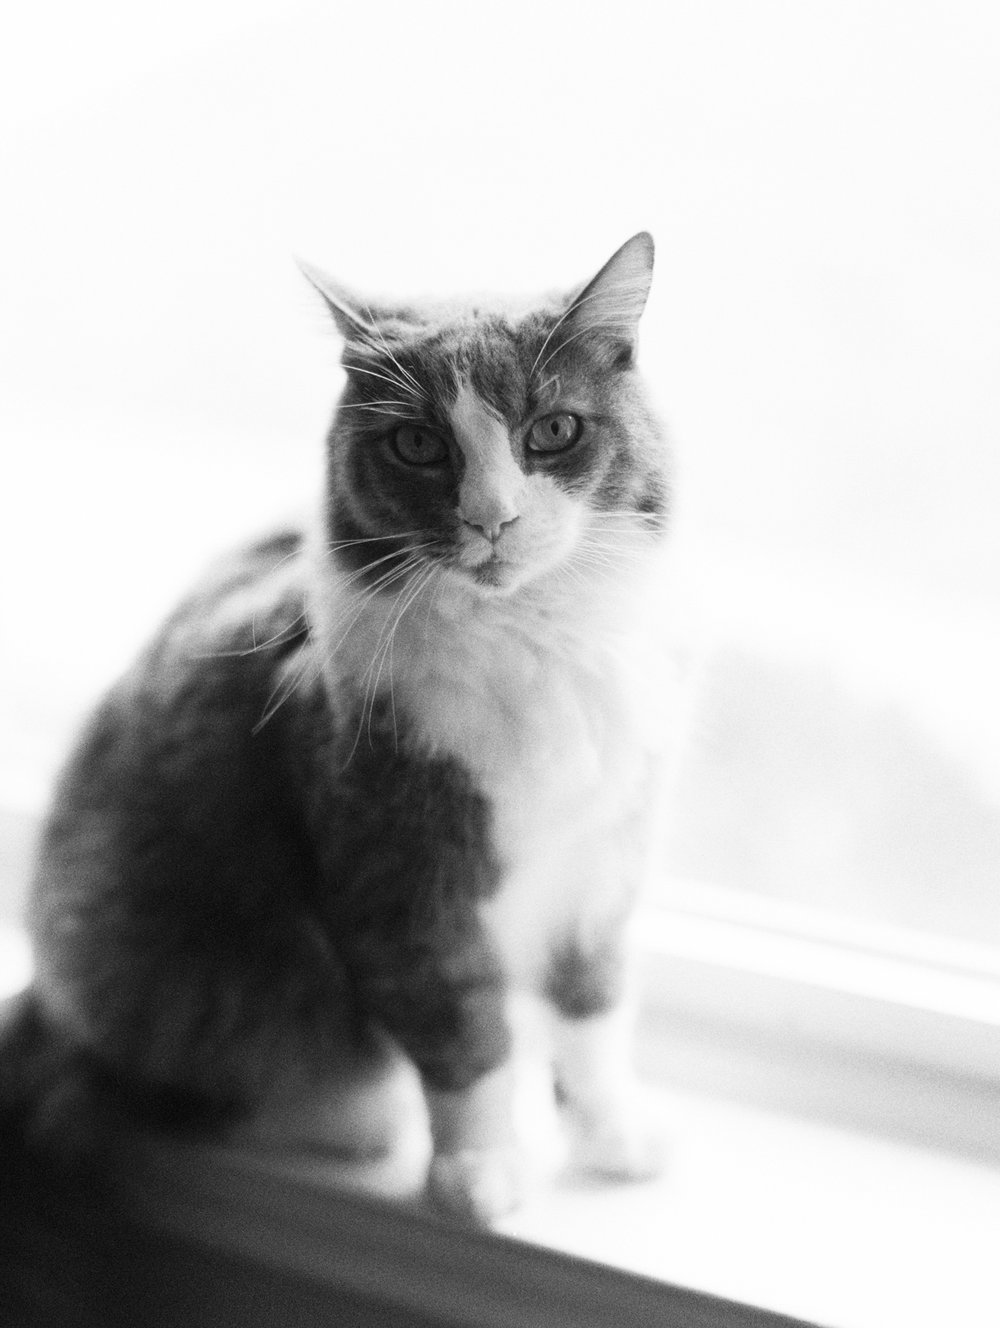 My sweet little fur boyfriend | Shot on Ilford B+W film